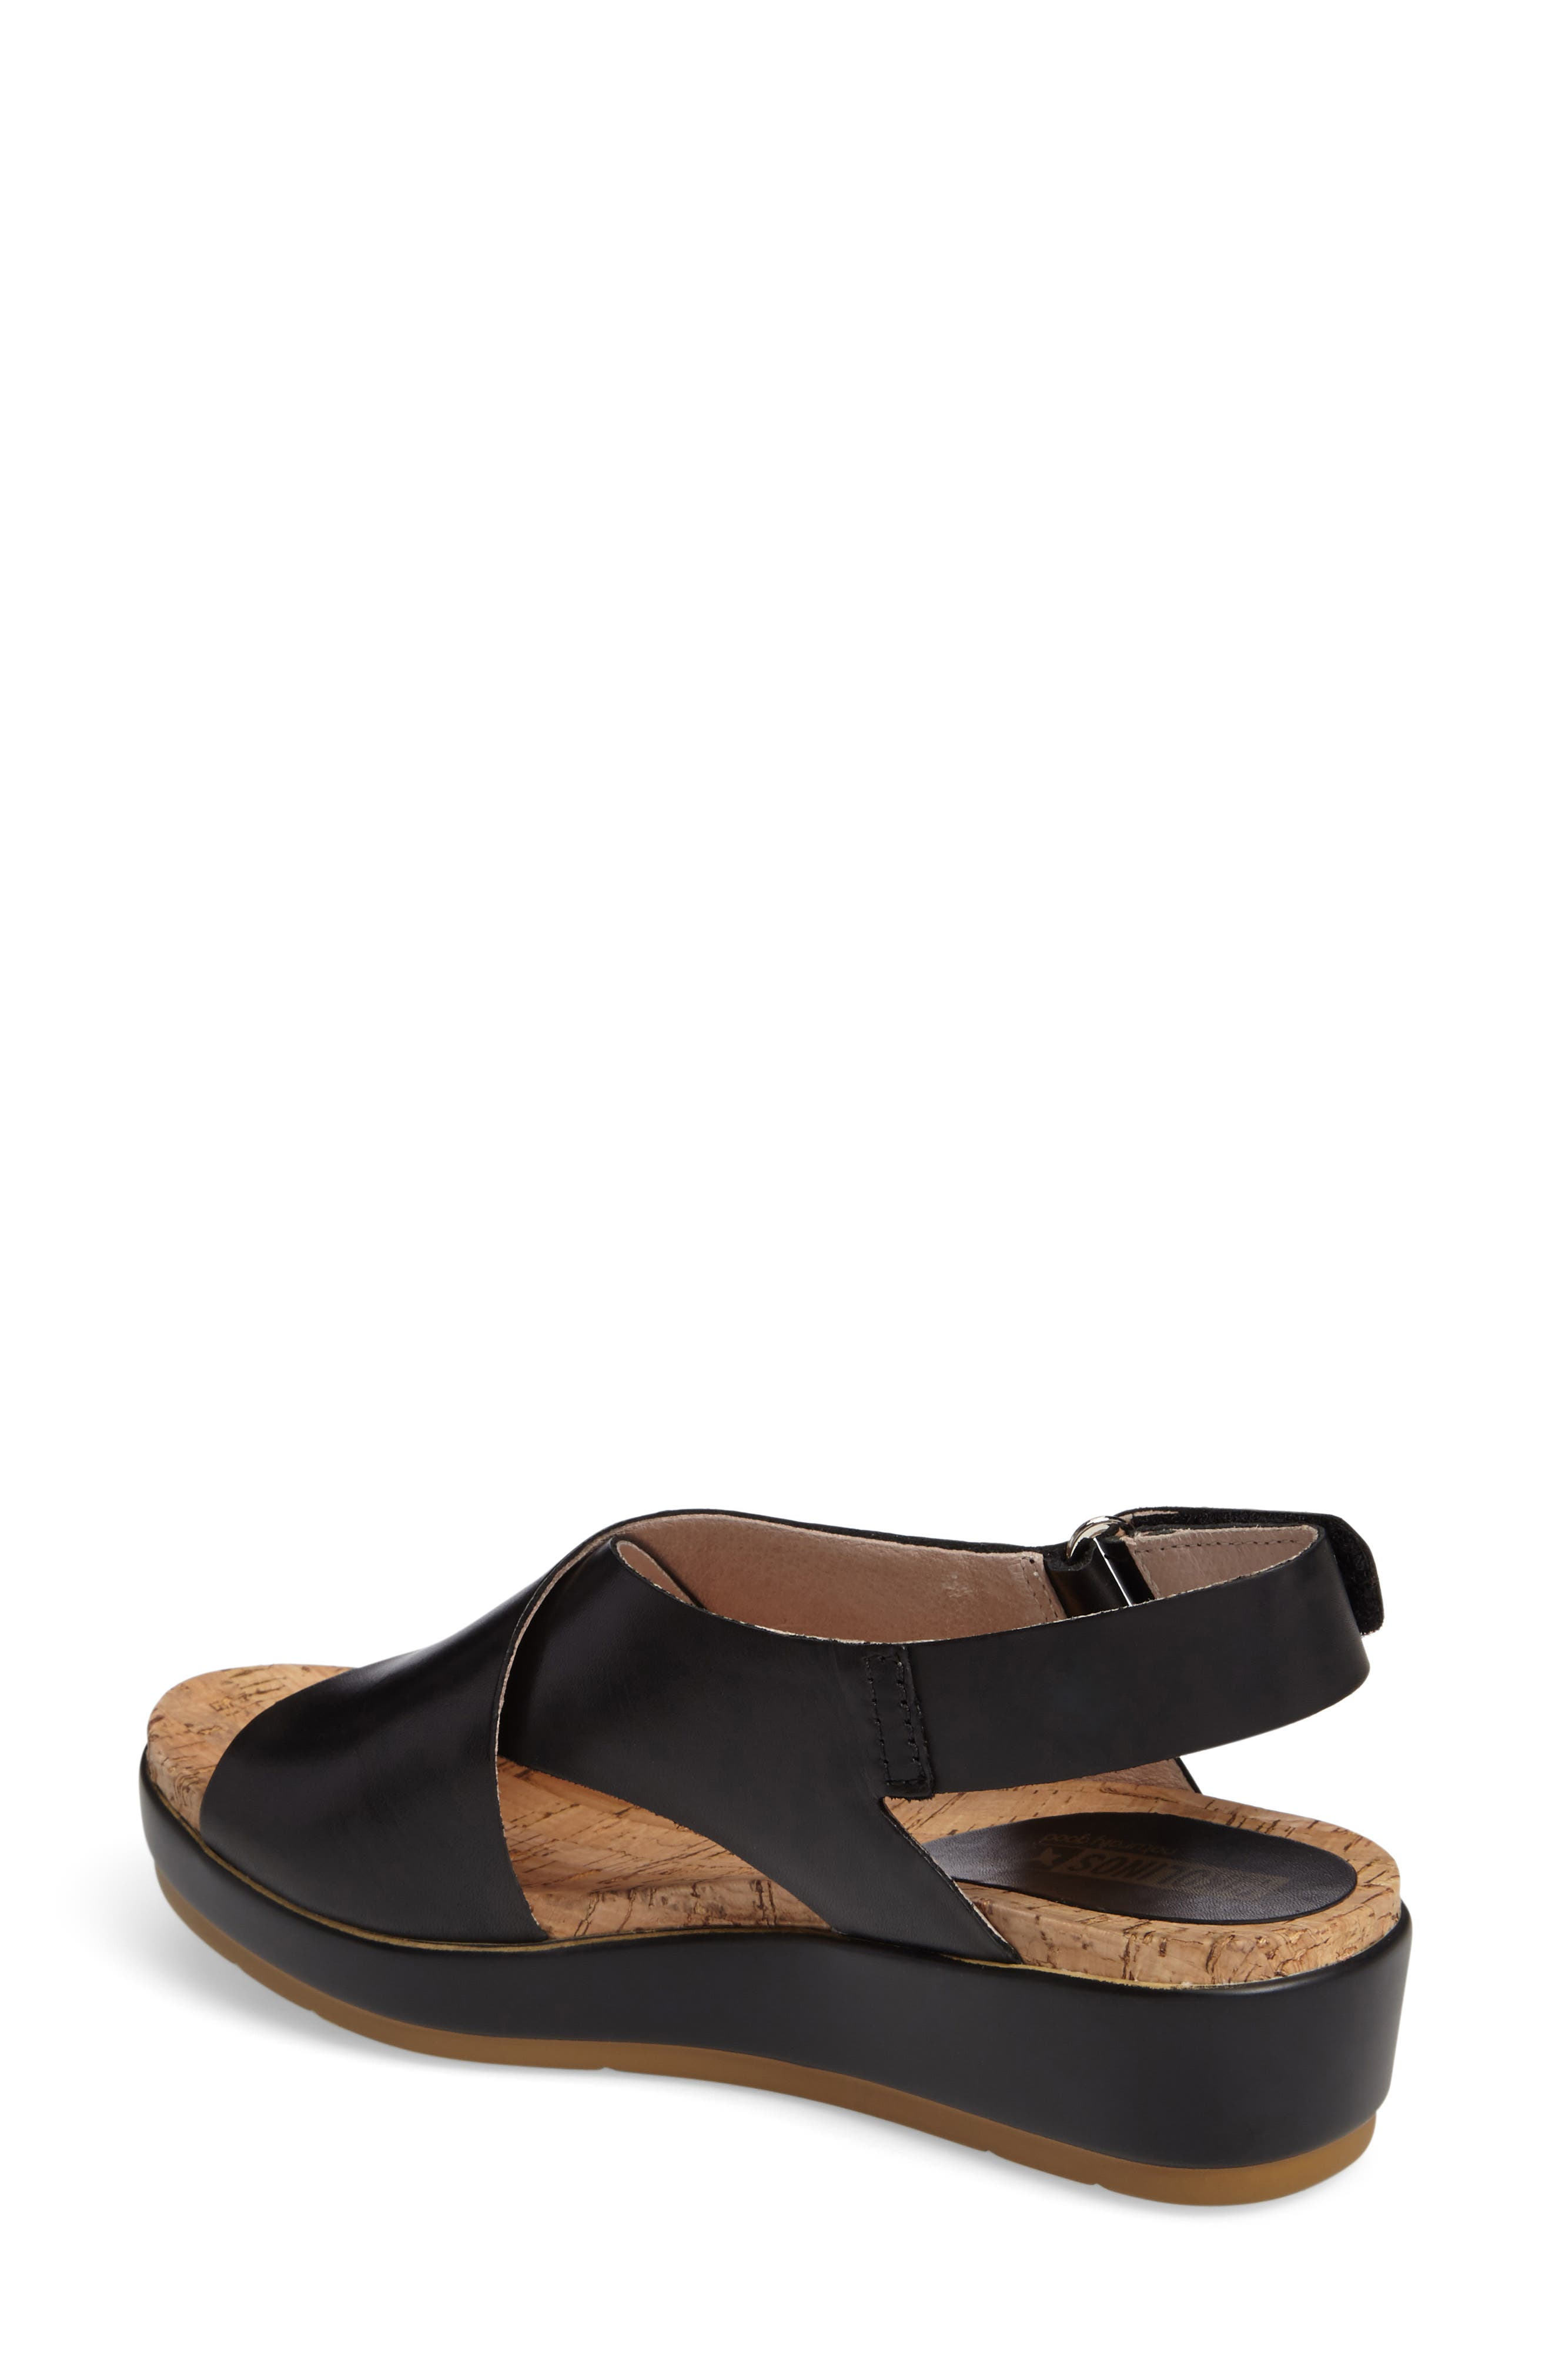 'Mykonos' Platform Sandal,                             Alternate thumbnail 2, color,                             BLACK/ BLACK LEATHER